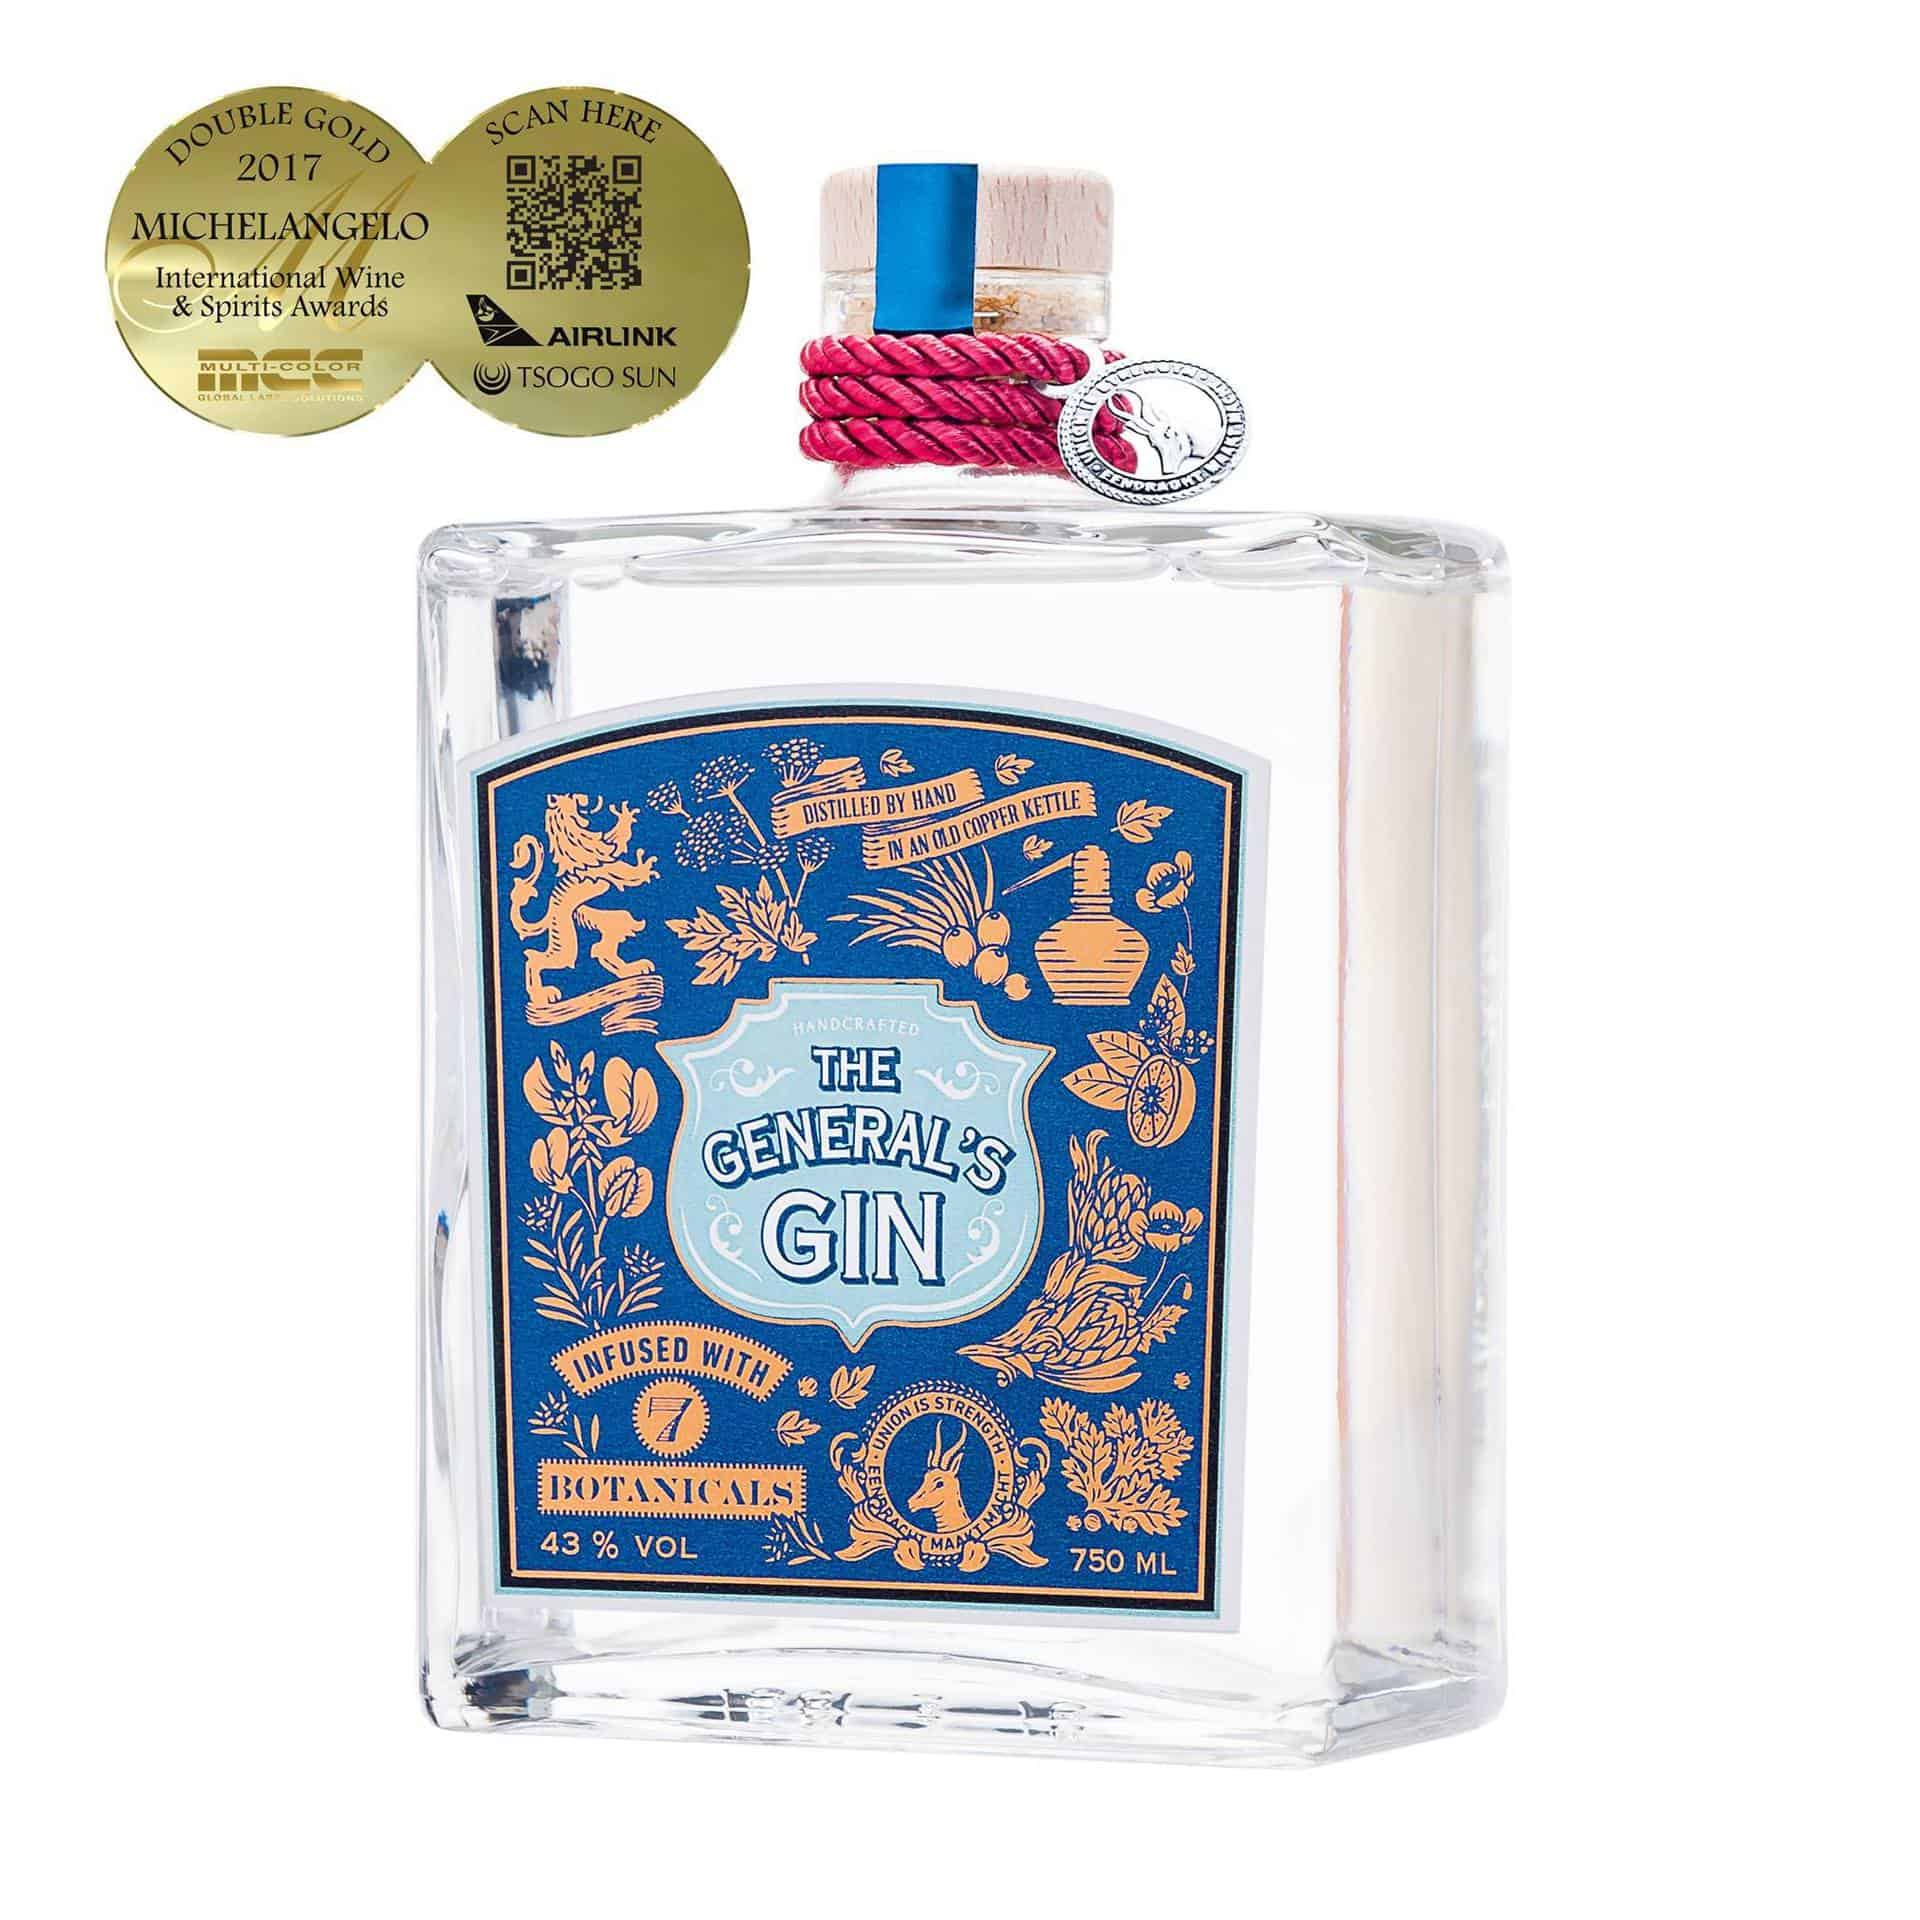 The General's Gin